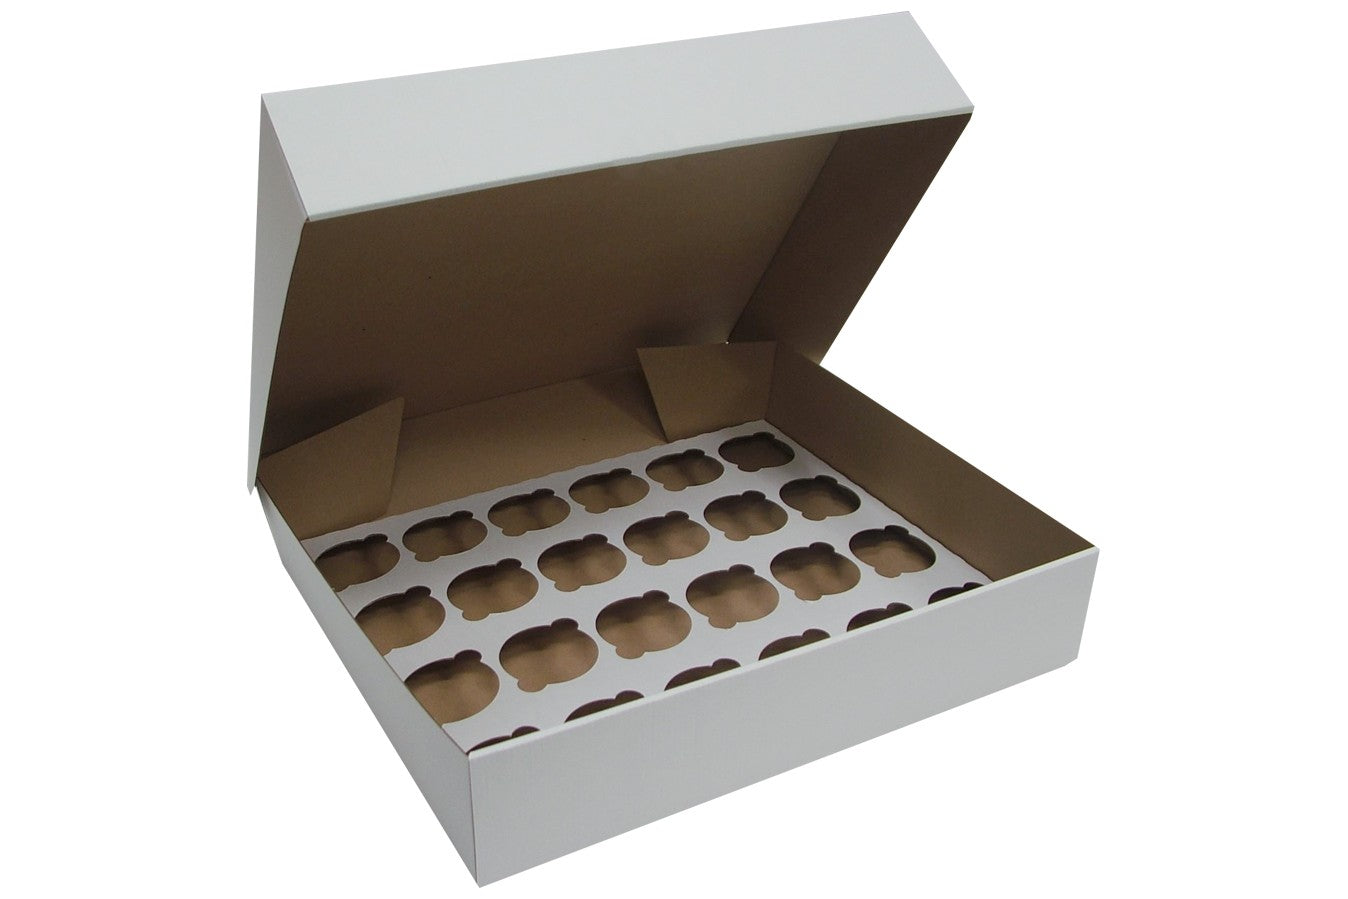 Corrugated Mini Cupcake Boxes for 24 mini cupcakes - cake boxes, cupcake boxes, thecakeboxes